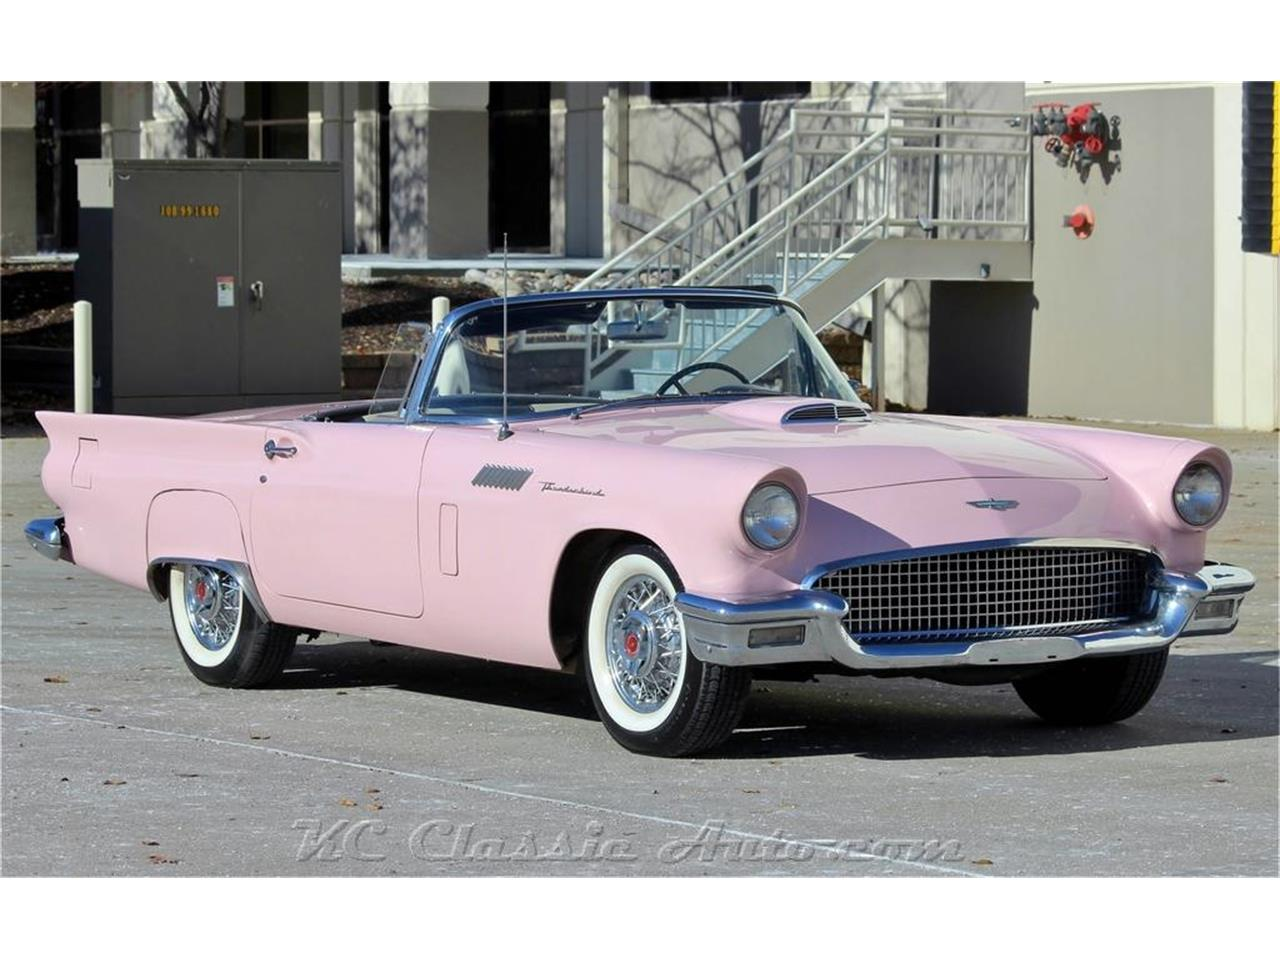 hight resolution of 1957 ford thunderbird for sale classiccars com cc 1171573 1956 thunderbird also 1957 ford thunderbird further studebaker wiring